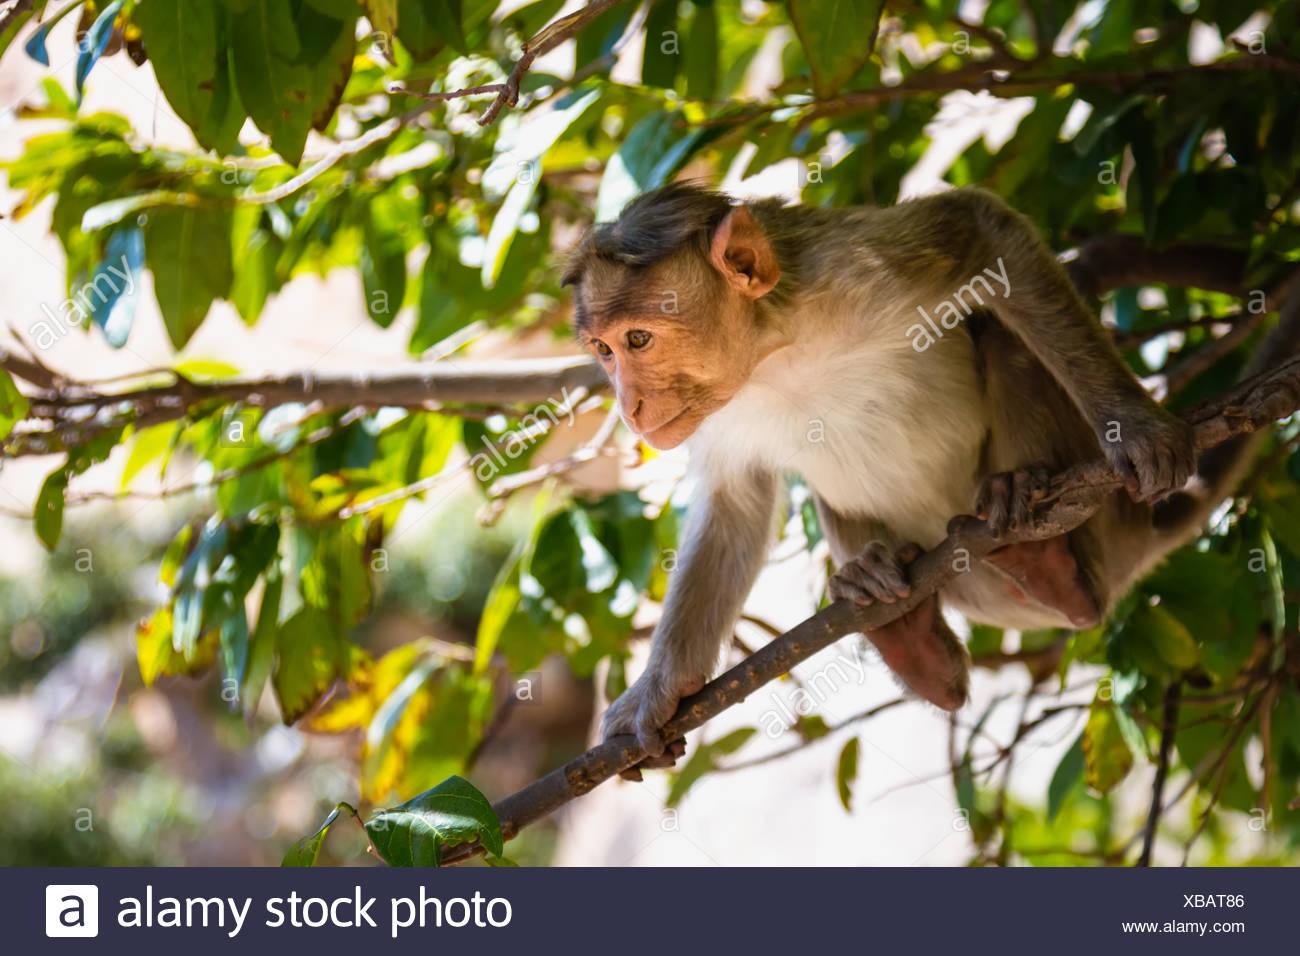 Monkey Sitting On Branch - Stock Image